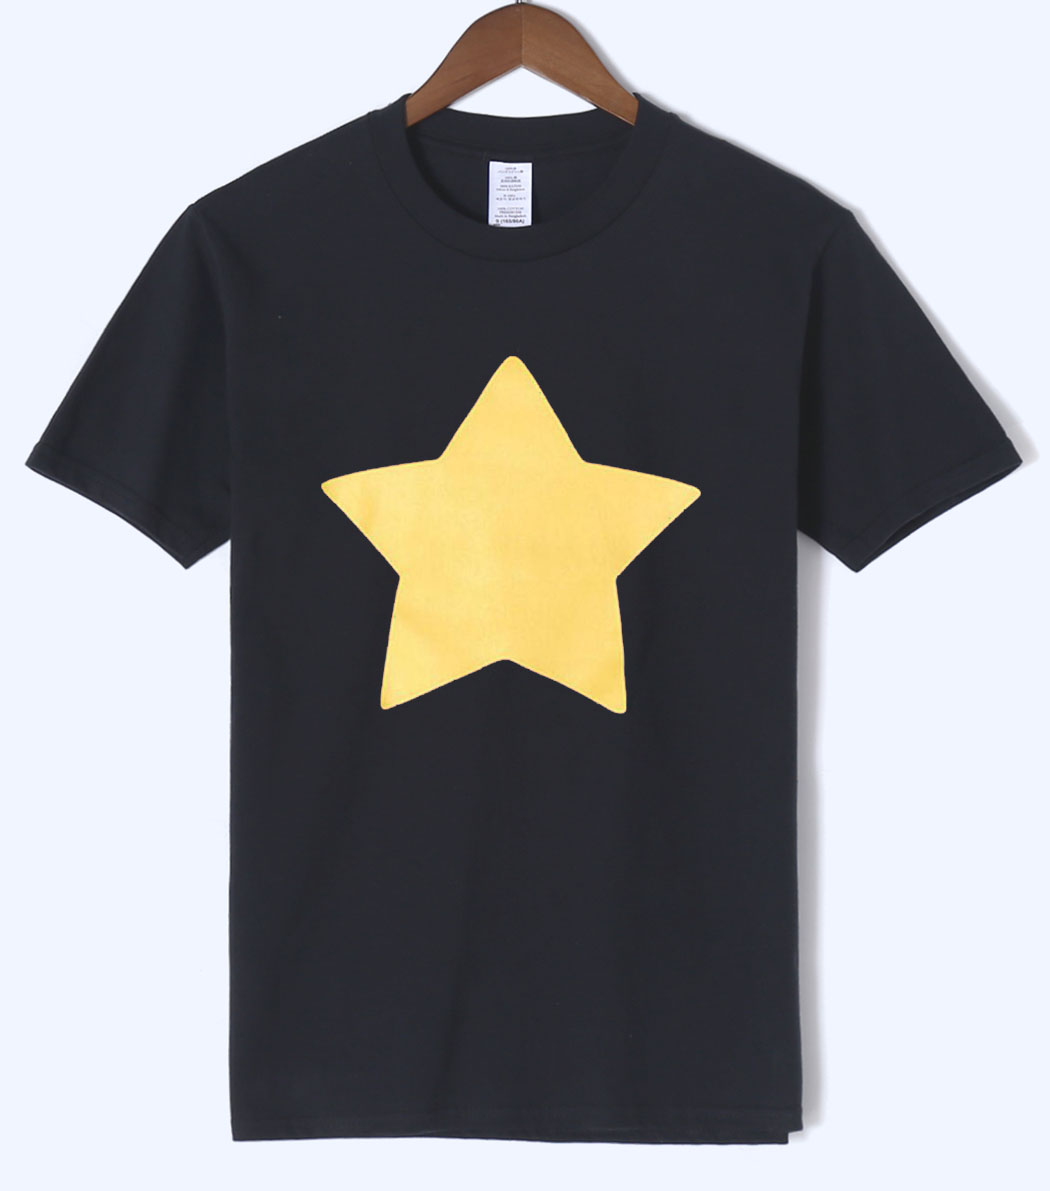 Hot Sale STEVEN UNIVERSE STAR T-Shirts 2018 Summer New Arrival Men T Shirts 100% Cotton High Quality Short Sleeve O-Neck T-Shirt